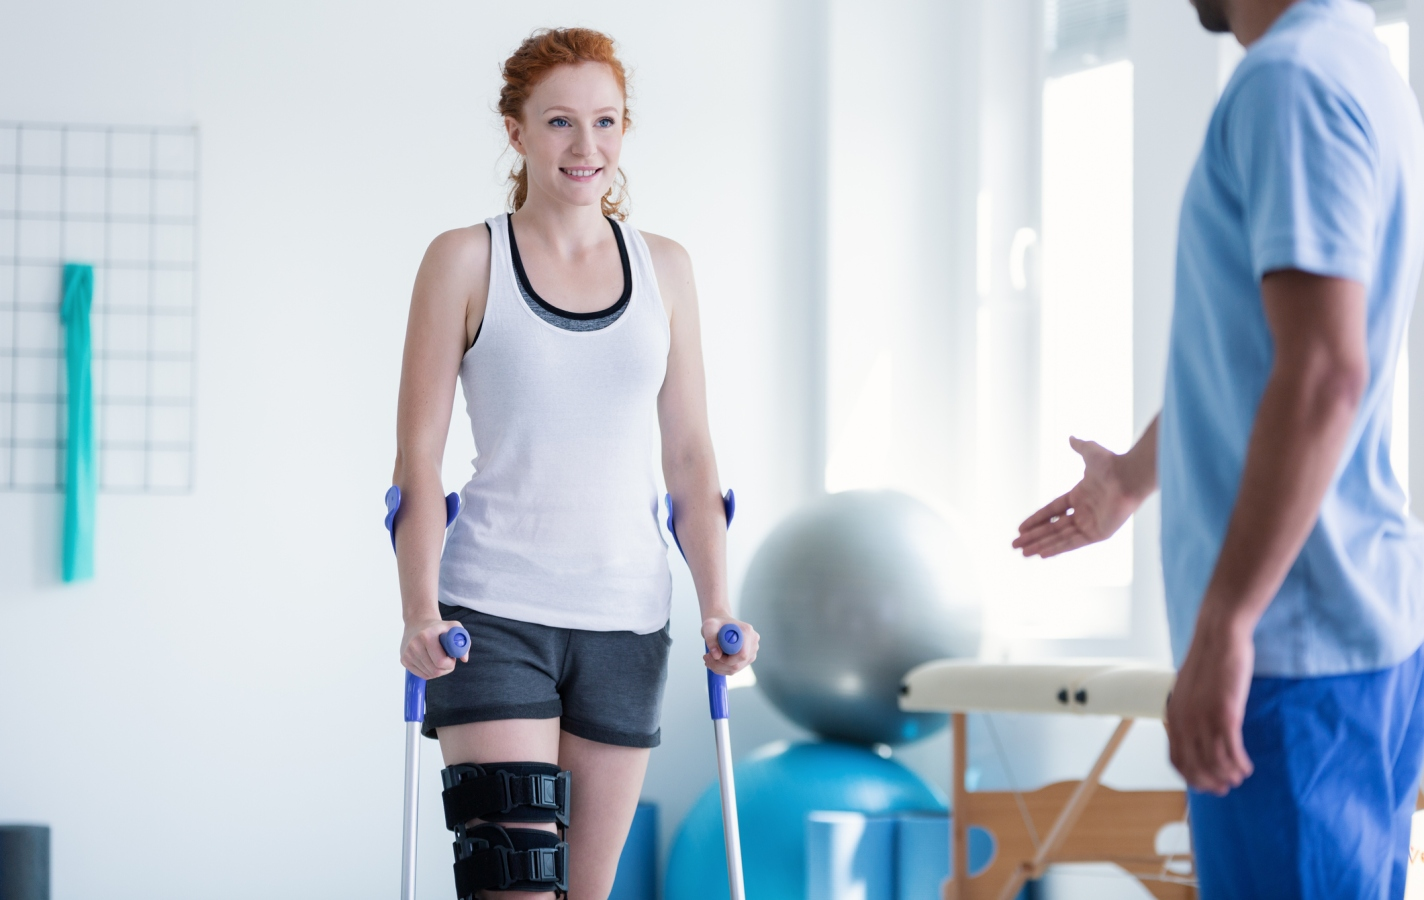 Woman walking with crutches during physiotherapy